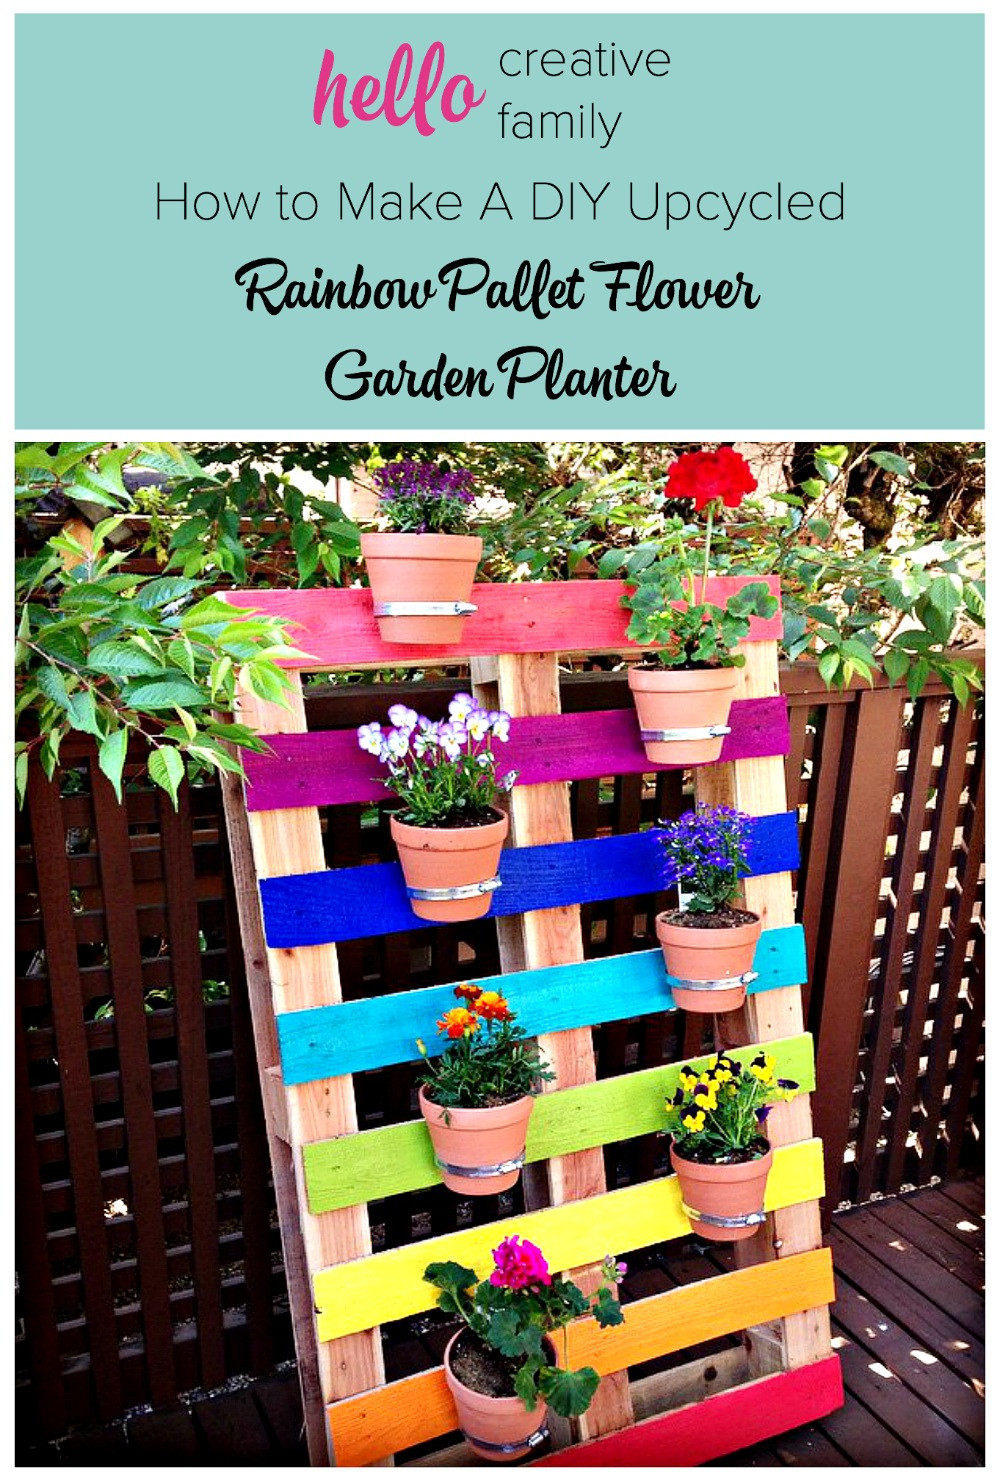 Kids DIY Projects  27 Rainbow Crafts DIY Projects and Recipes Your Family